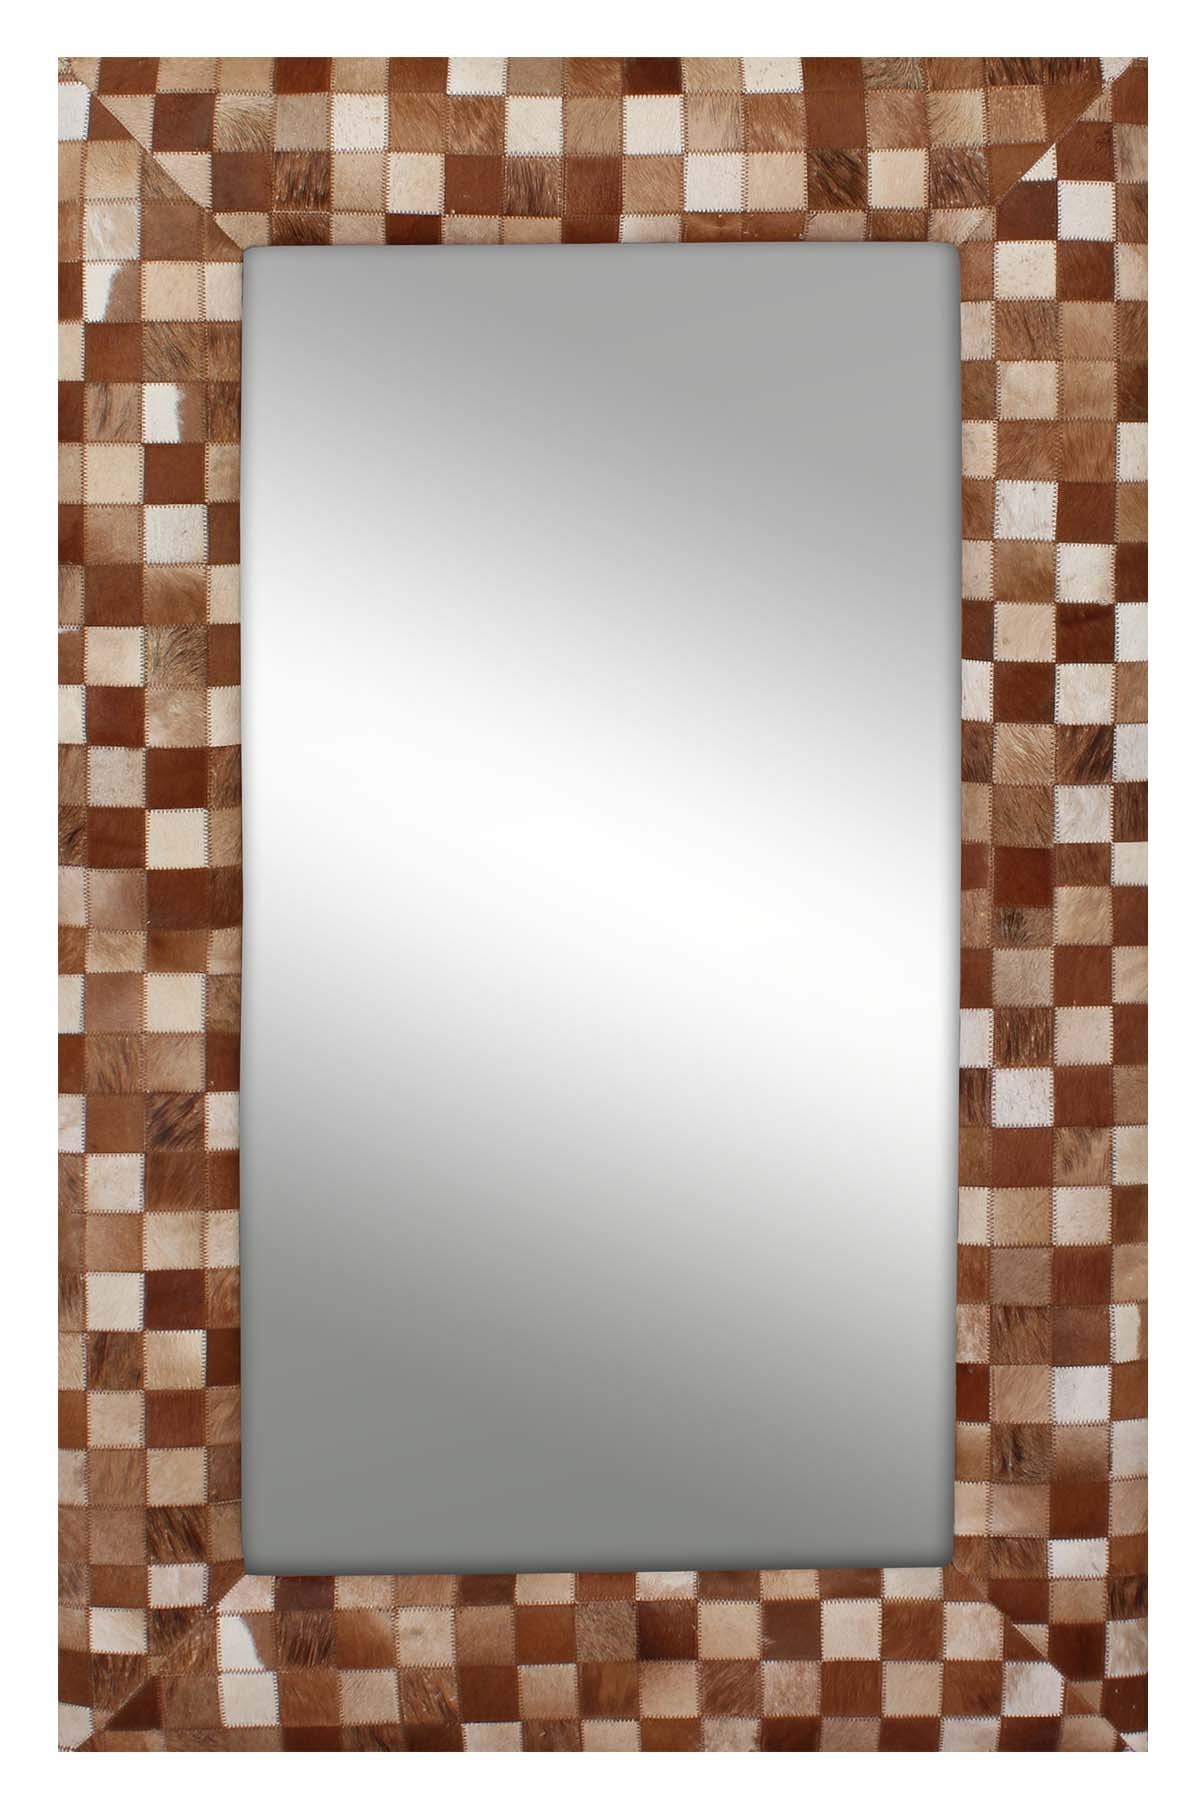 Buy Mirror Frame Online In India At Best Prices Throughout Leather Mirrors (View 14 of 15)